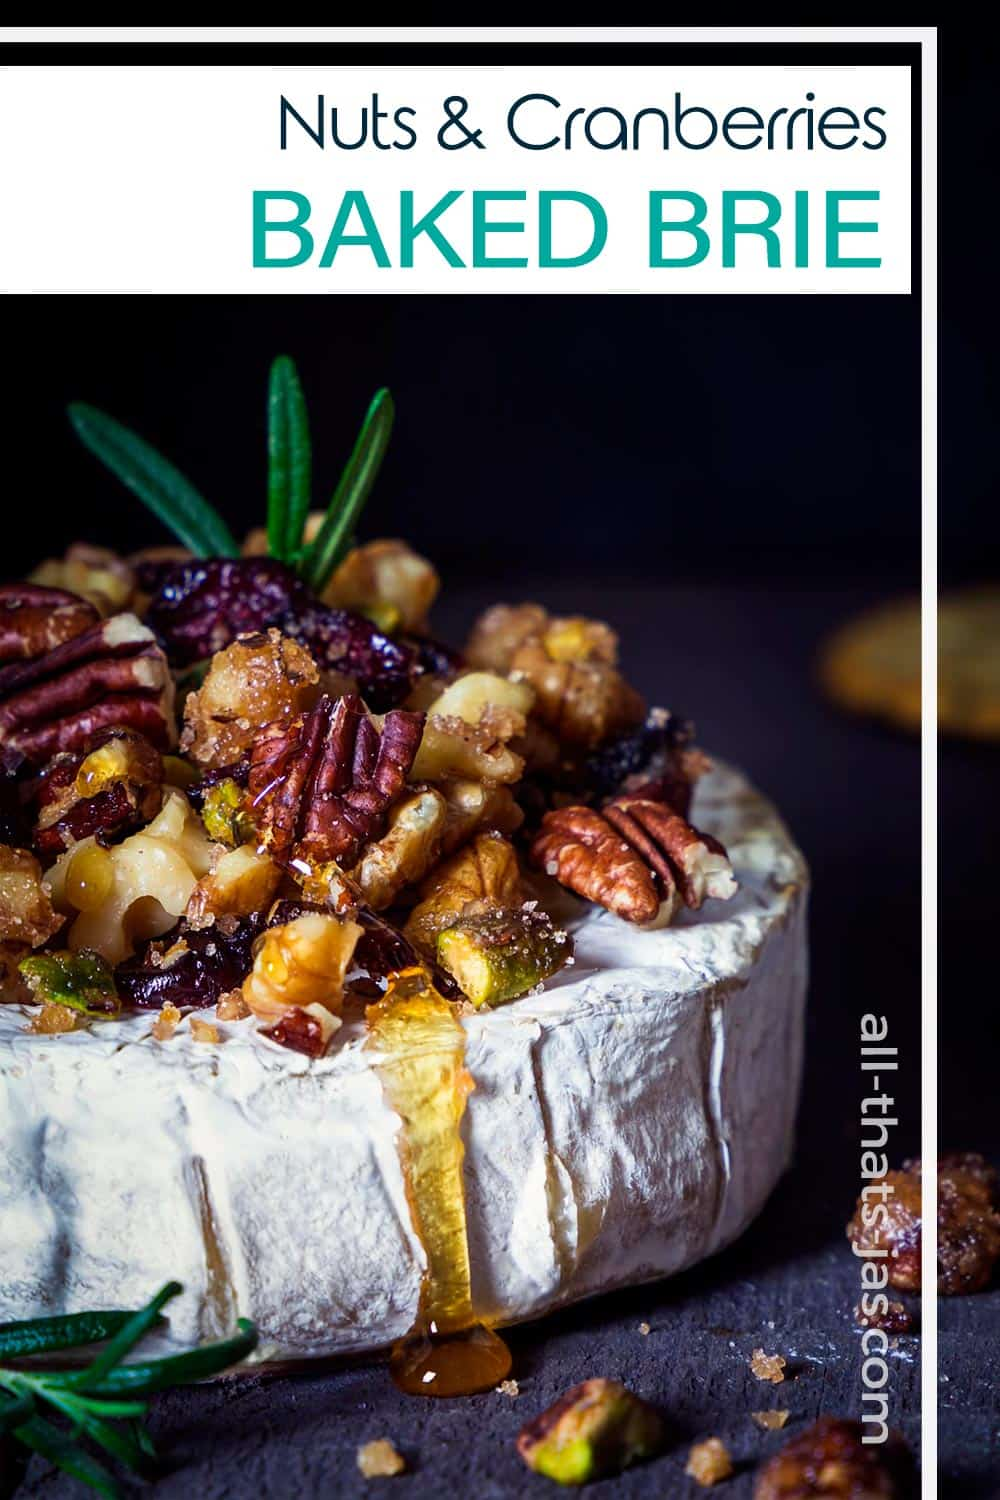 A close up of roasted brie with nut topping and text overlay.